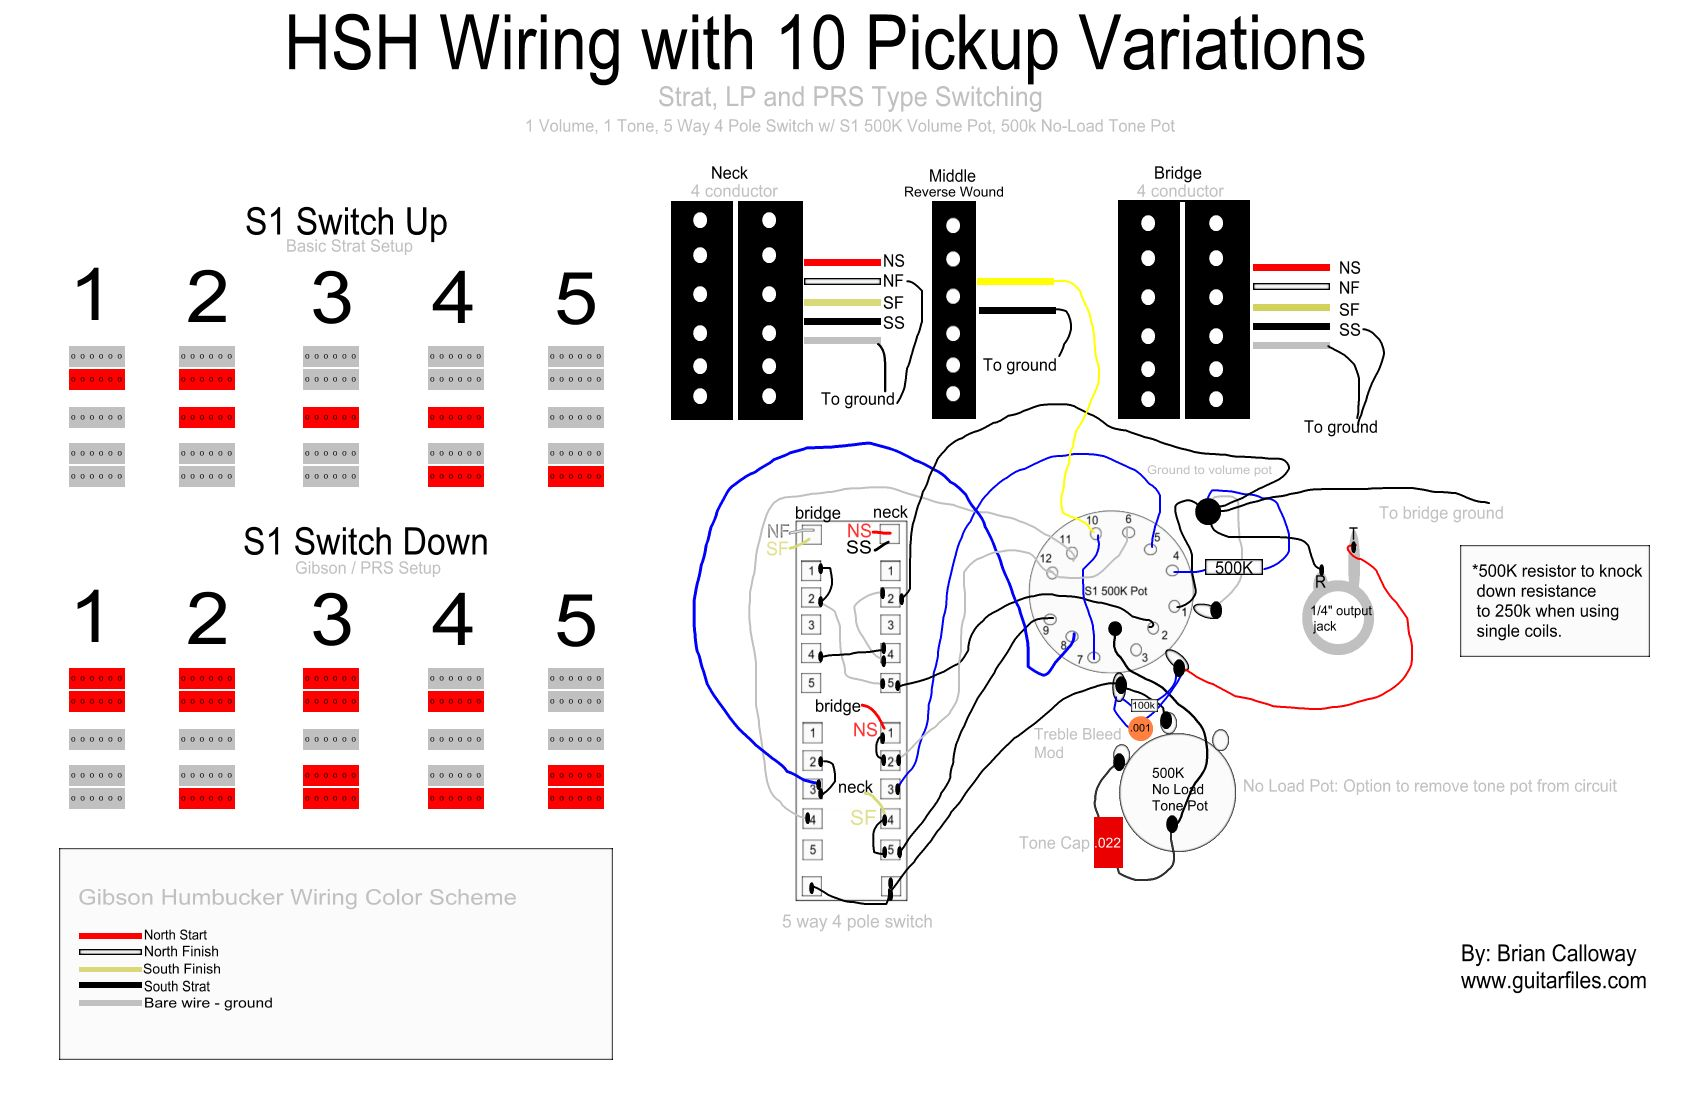 dimarzio hsh guitar wiring diagram the blog hsh guitar wiring - 10 pickup combinations. 4 pole switch ...